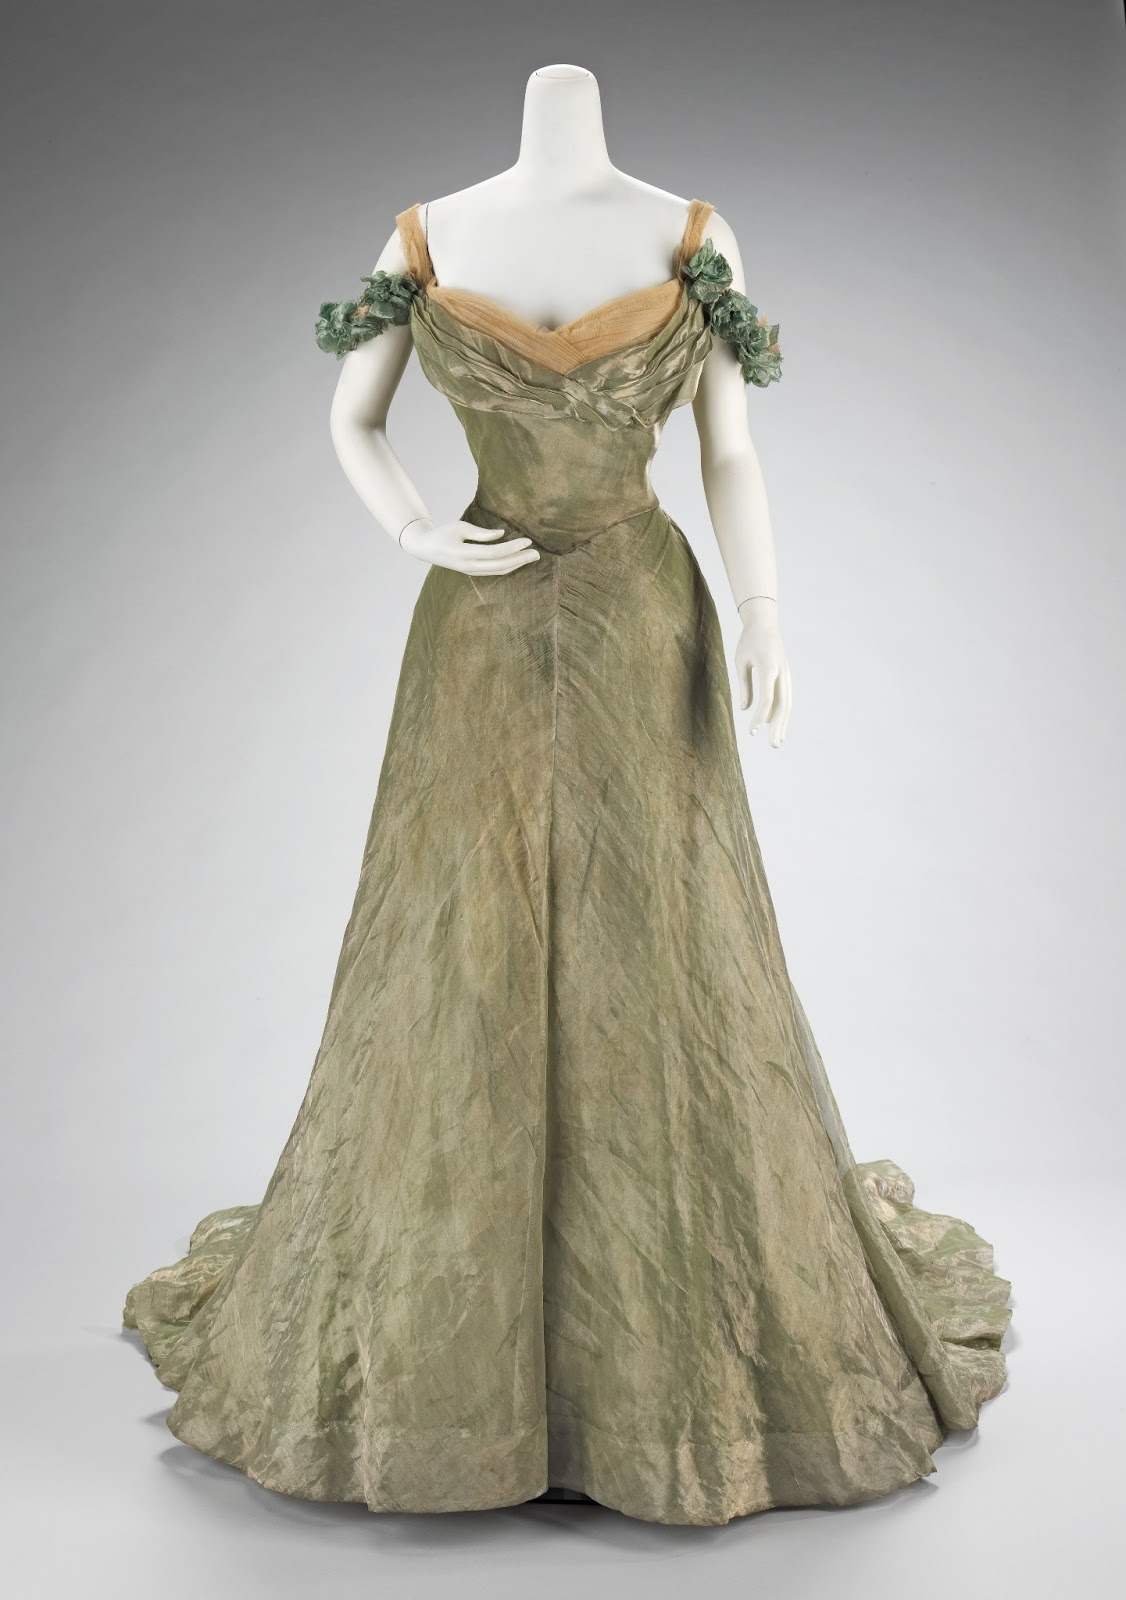 Frolicking Frocks: Gibson Girl Gown Progress